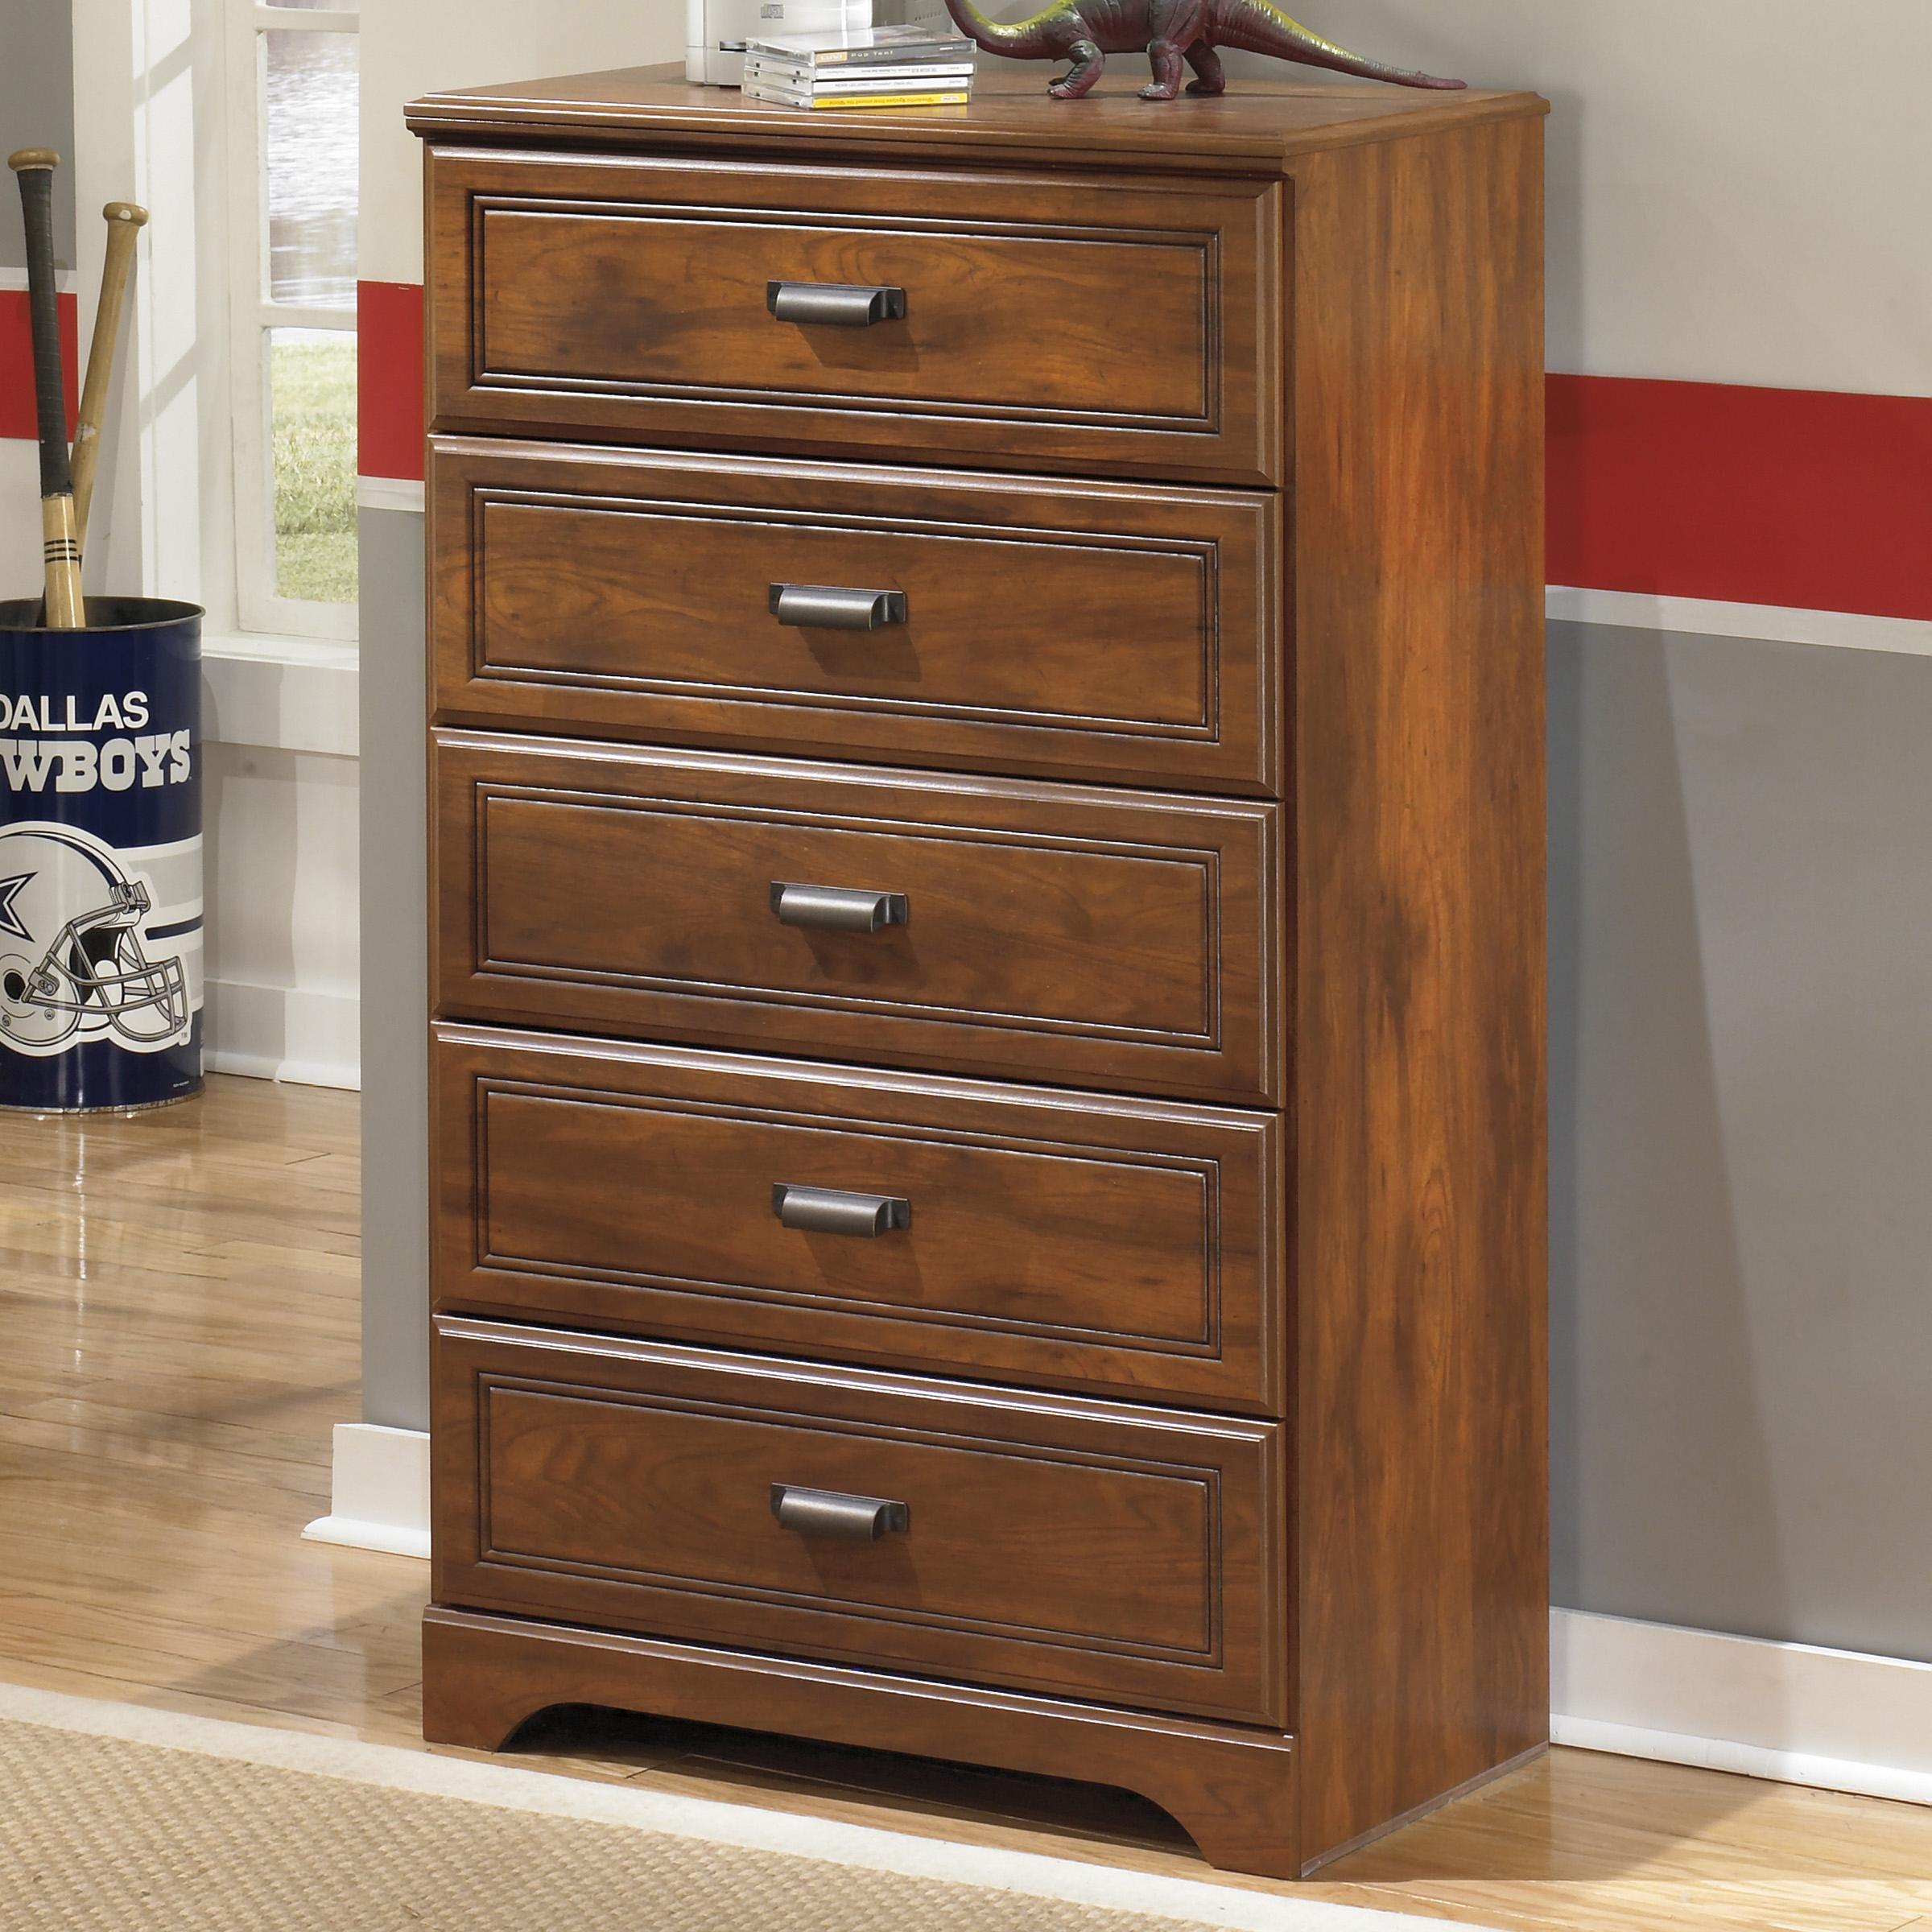 Signature Design By Ashley Barchan Five Drawer Chest Vandrie Home Furnishings Chest Of Drawers